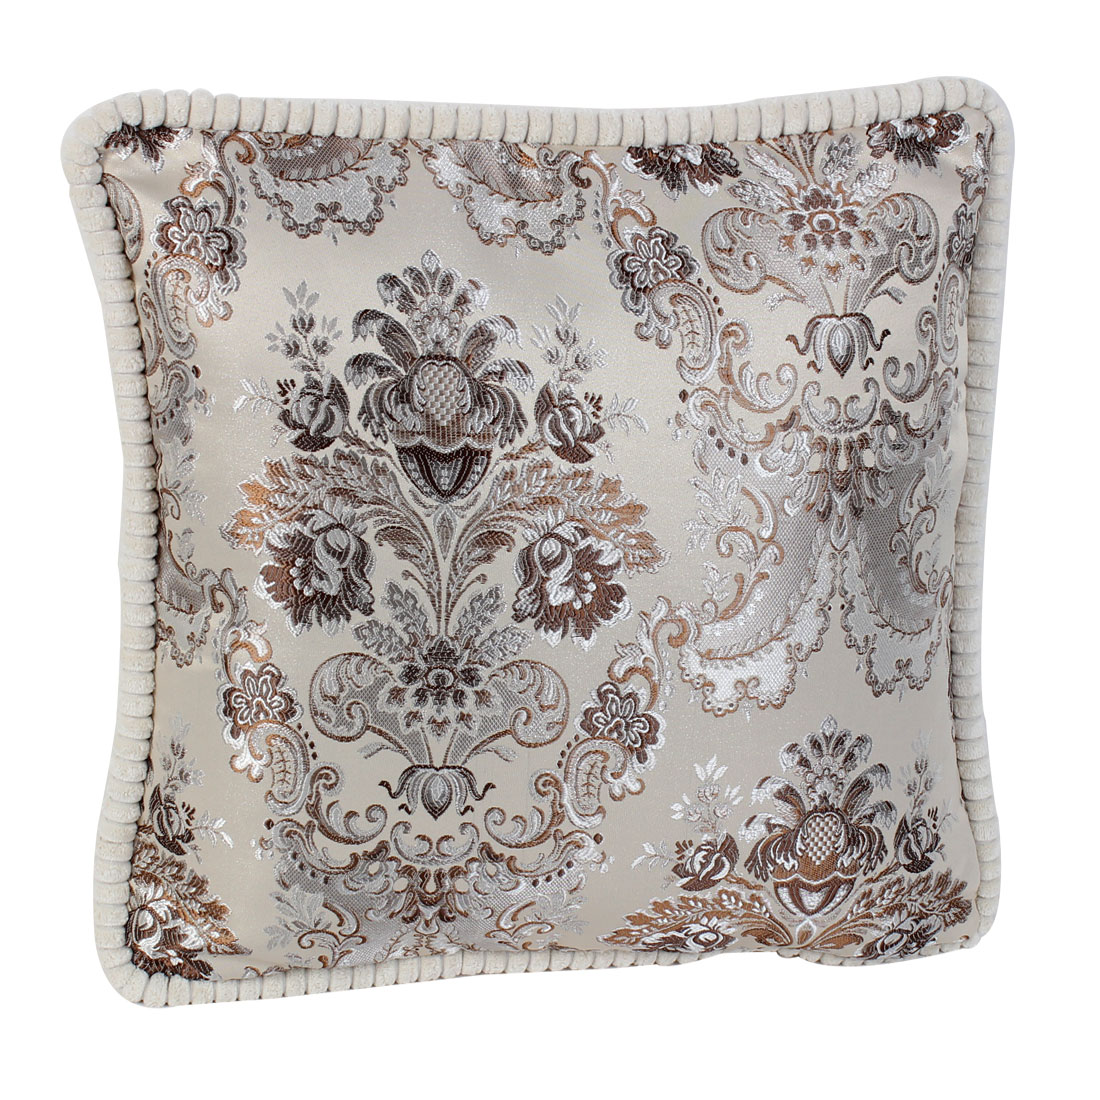 Chenille Flower Embroidery Throw Cushion Pillow 45cm x 45cm Beige